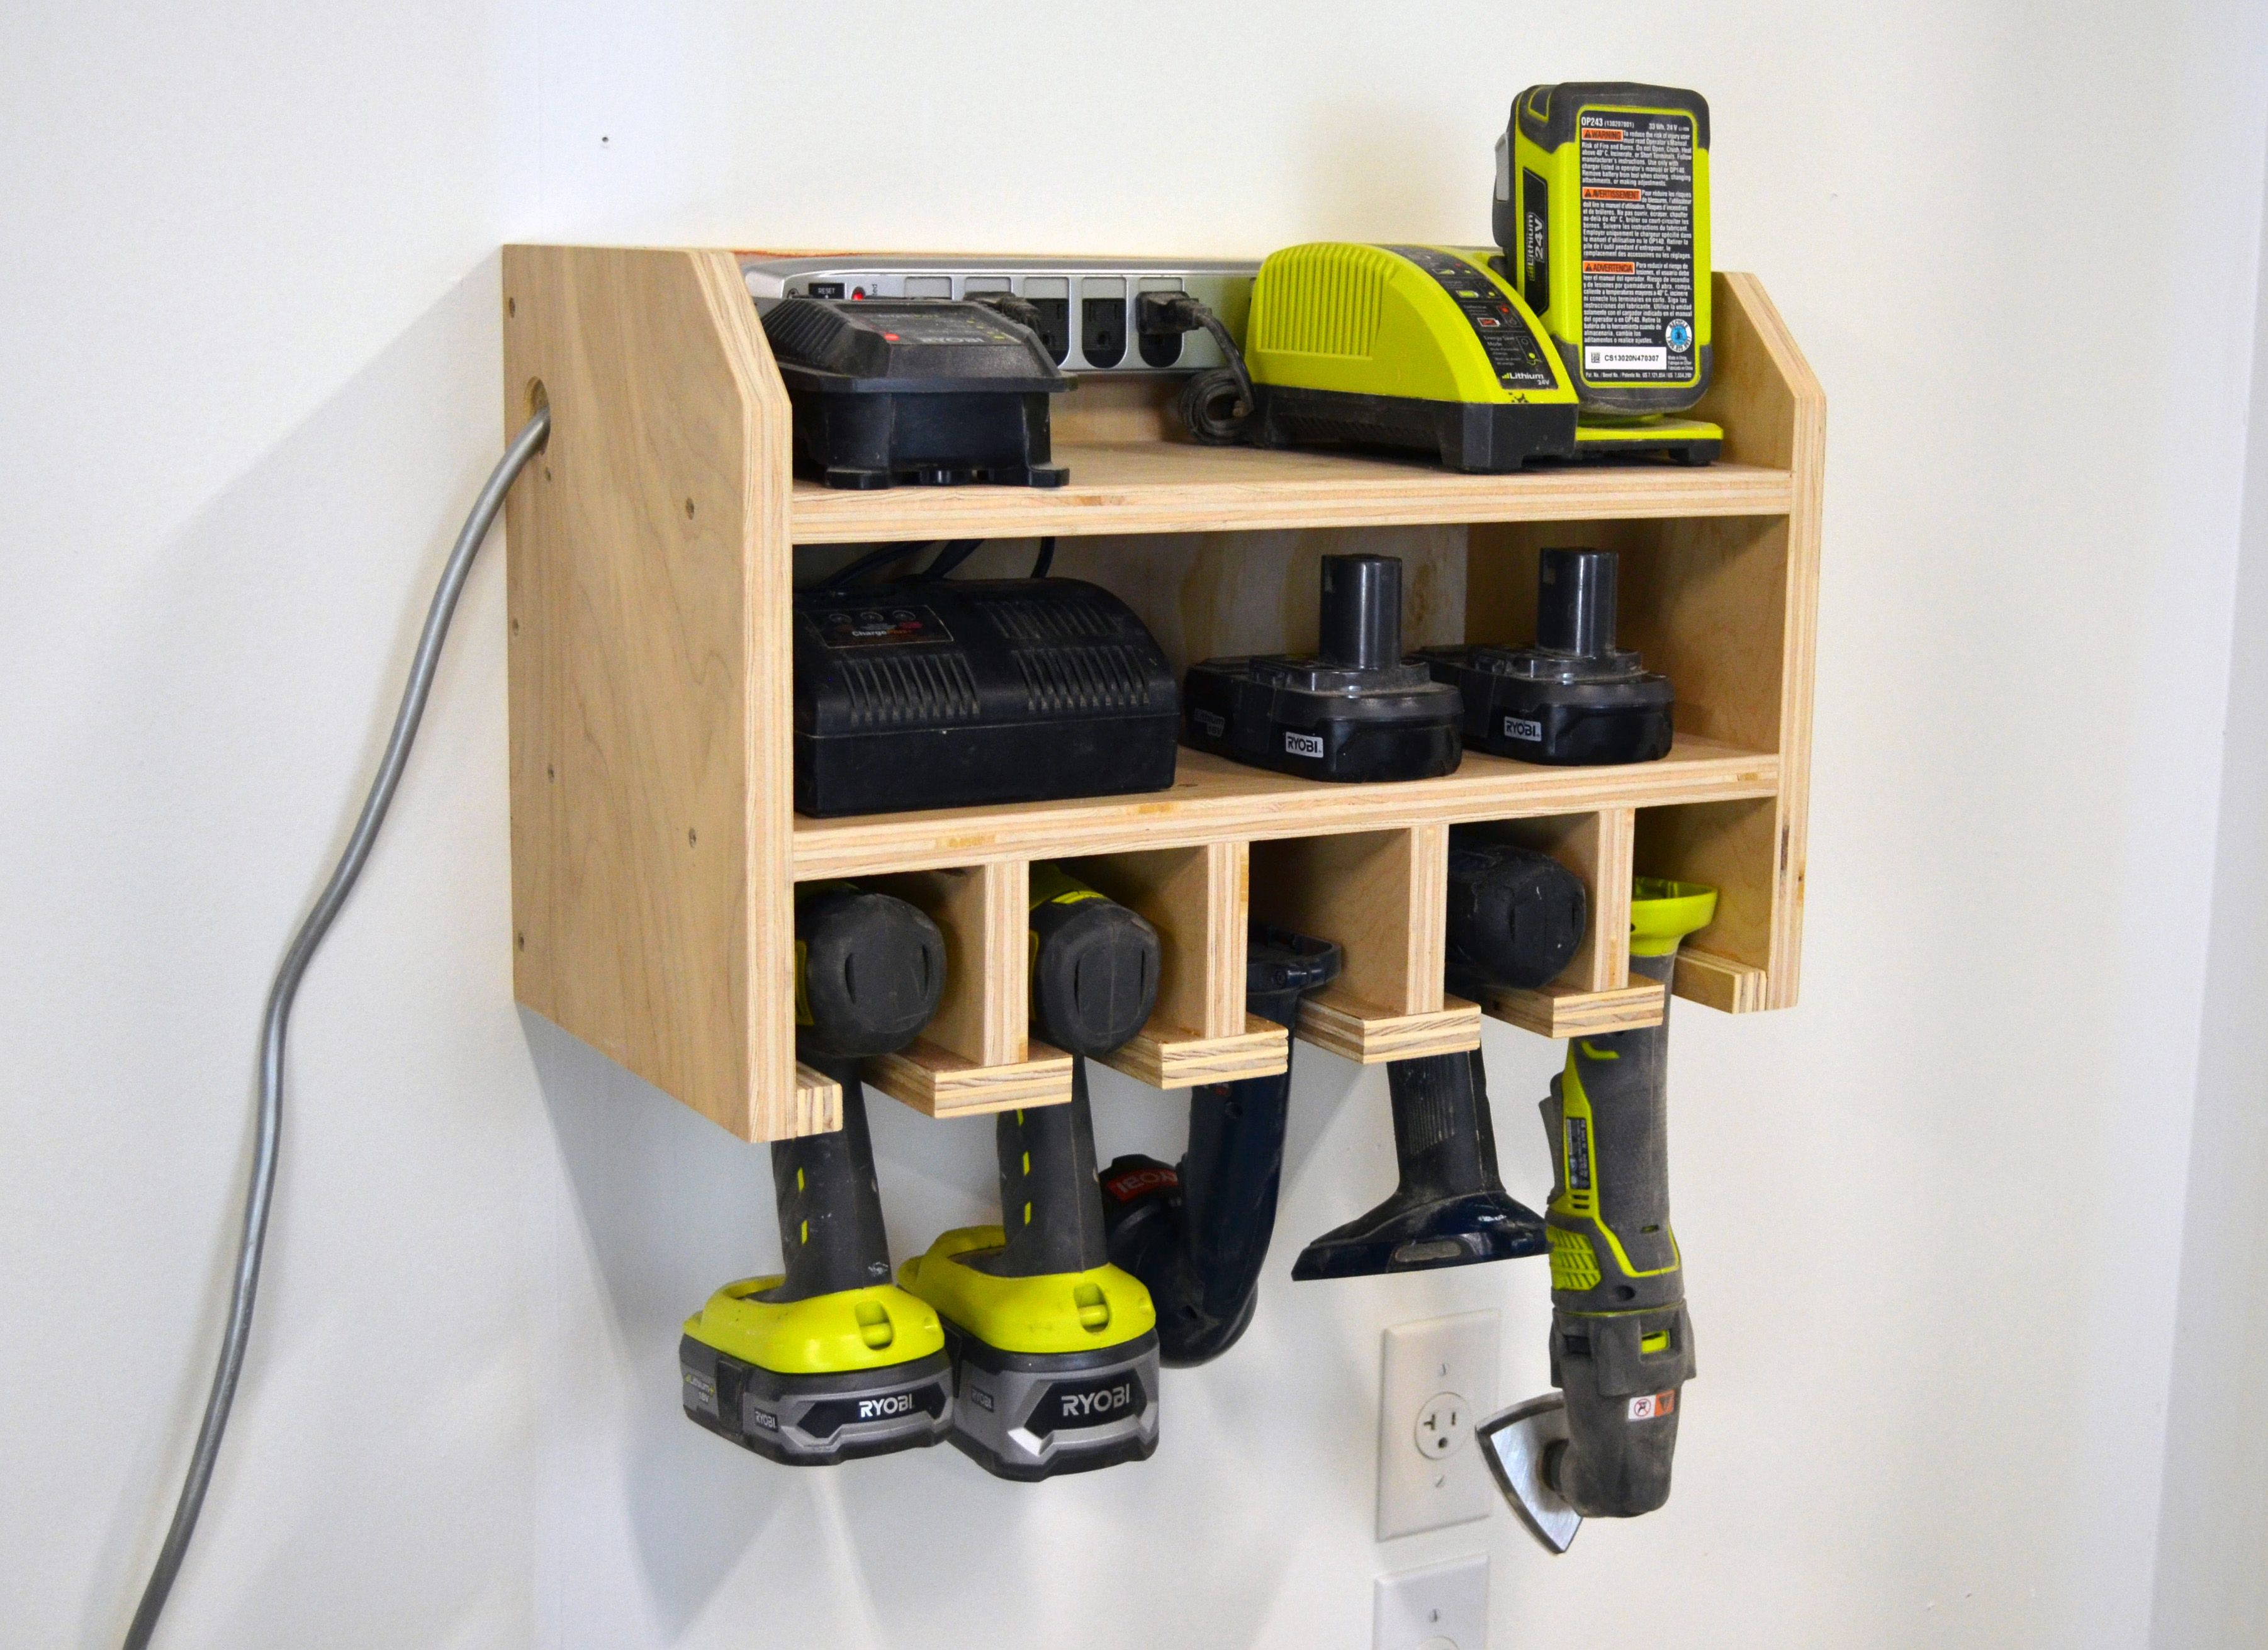 storage dock for your cordless drill